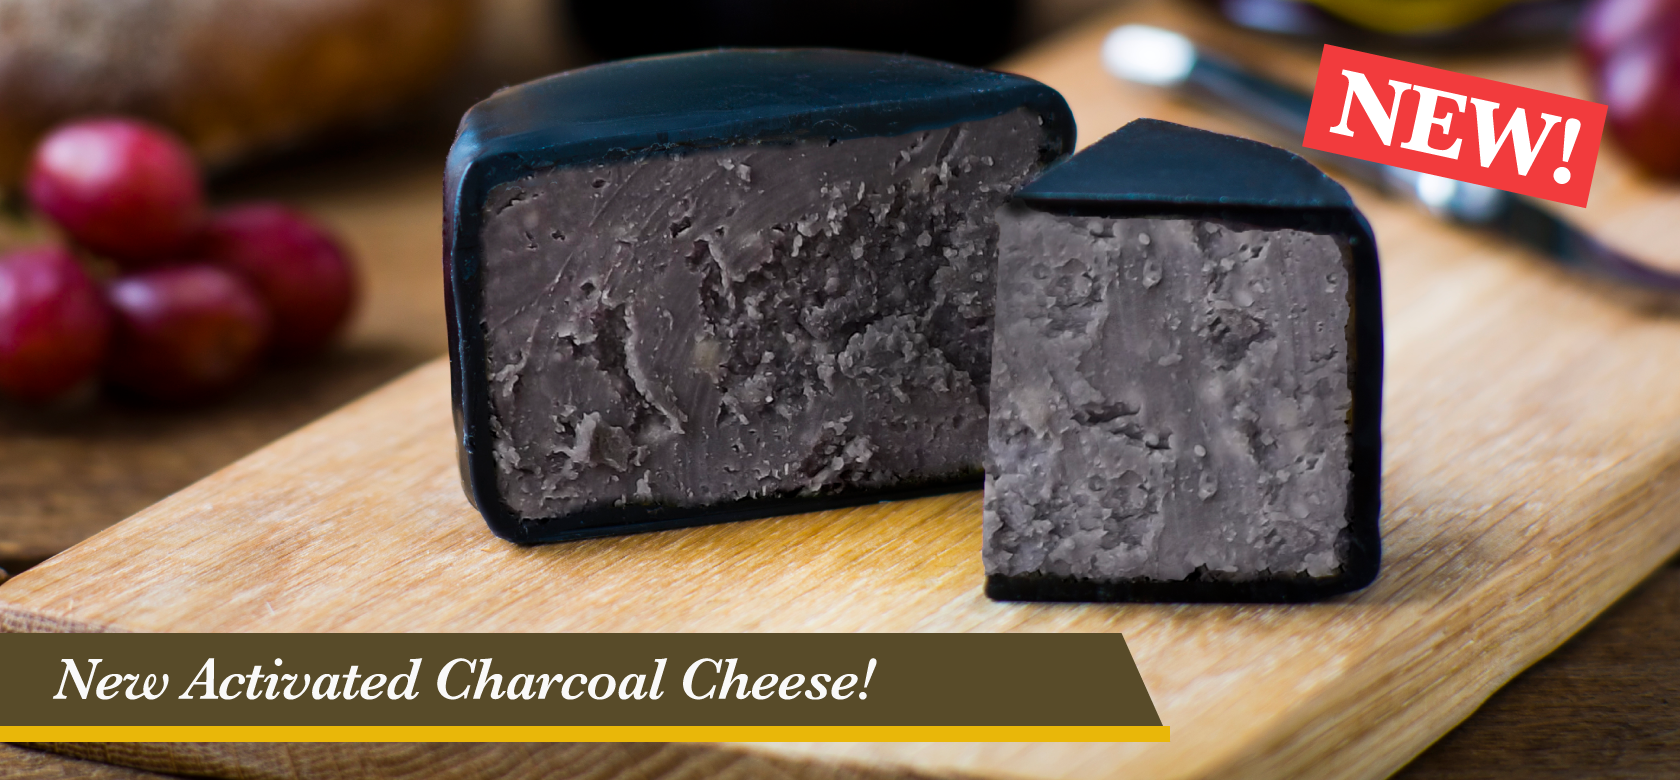 Charcoal Cheese